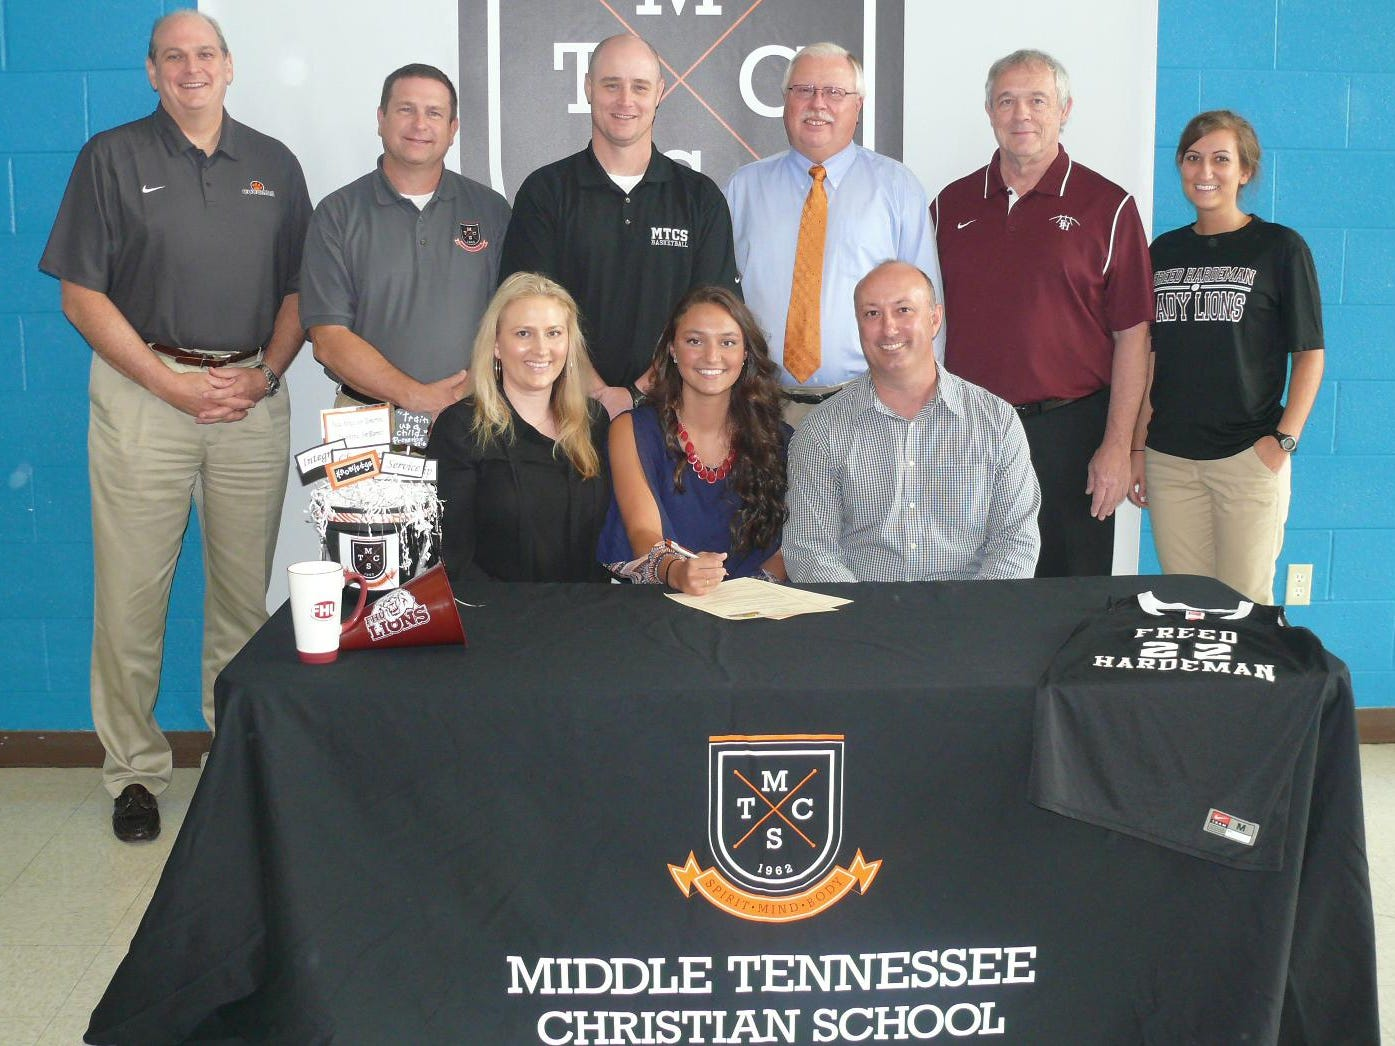 MTCS senior Ashlynd Wilkerson signed with Freed-Hardeman. In the front, from left, are mom Callan Wilkerson, Ashlynd Wilkerson and dad Brad Wilkerson. In the back, from left, is MTCS President Phil Ellenburg, MTCS Principal Todd Miller, MTCS Athletic Director Jason Piercey, MTCS girls basketball coach Lynn Burkey, Freed-Hardeman women's coach Dale Neal and Freed-Hardeman assistant Alissa Hargett.